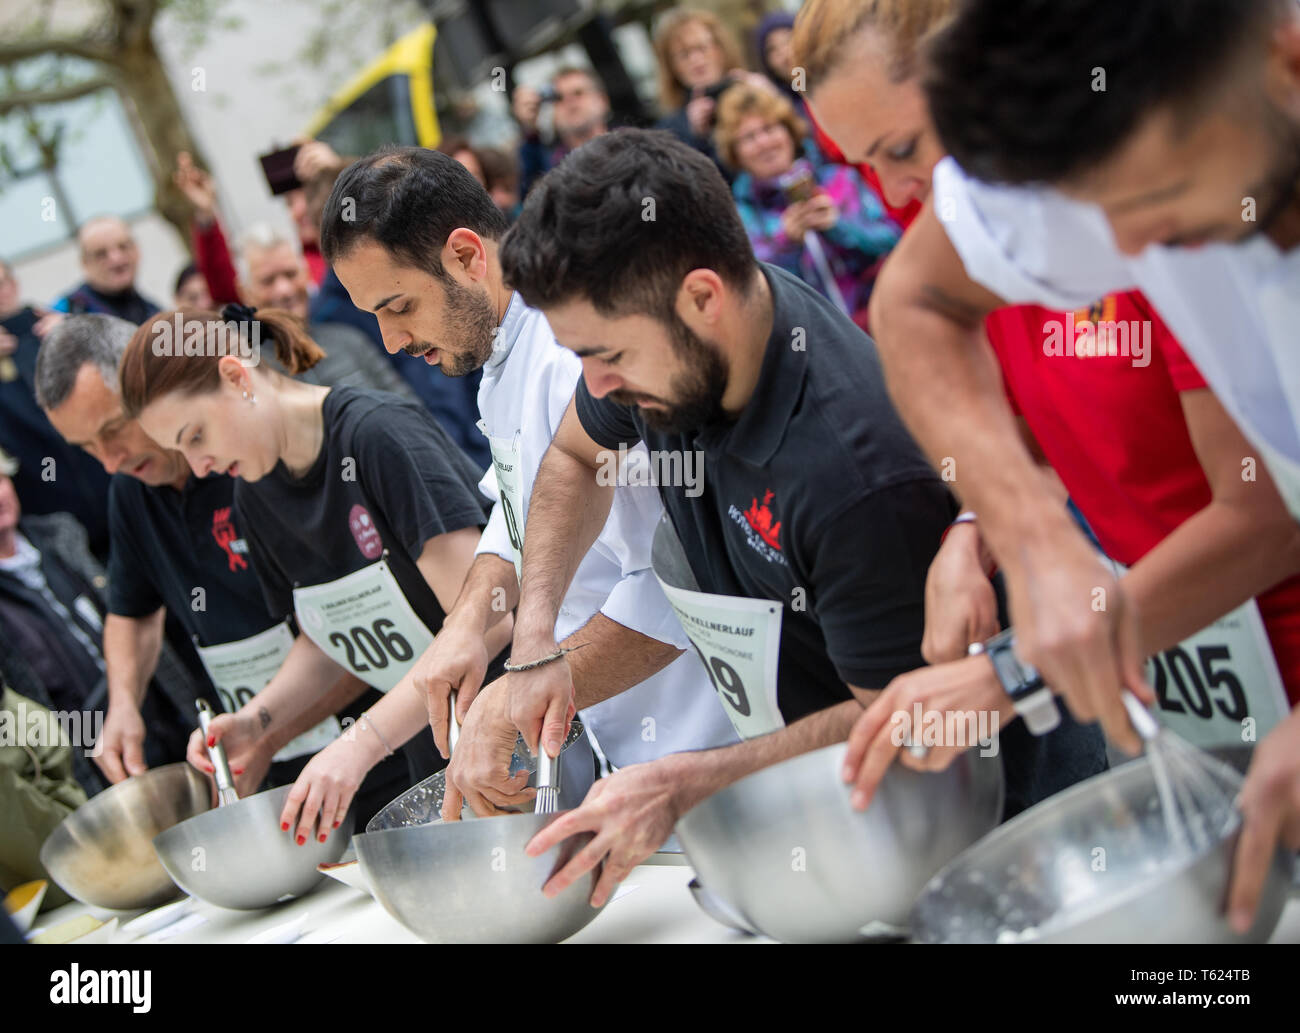 Berlin, Germany. 28th Apr, 2019. Cooks beat Eischnee for a dessert at the Berliner Kellnerlauf on Kurfürstendamm. Waiters, barkeepers, chefs and bellboys compete in the art of fast gastronomy. The 400 meter long running track is located on the one-sided closed Ku'damm. Credit: Monika Skolimowska/dpa-Zentralbild/dpa/Alamy Live News Stock Photo